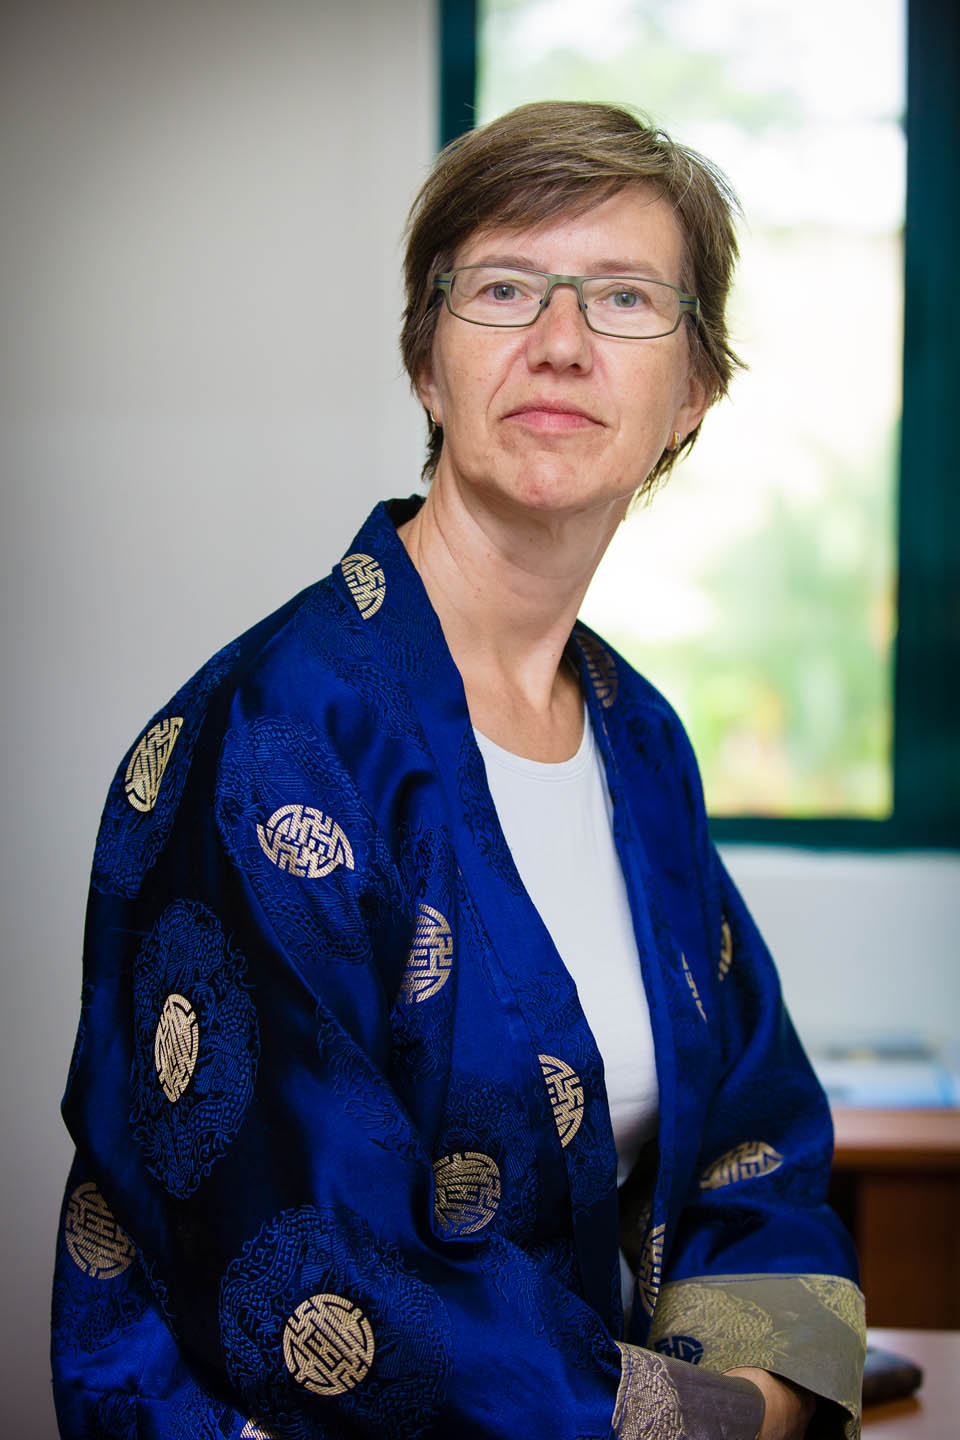 Rev Nelly van Kampen